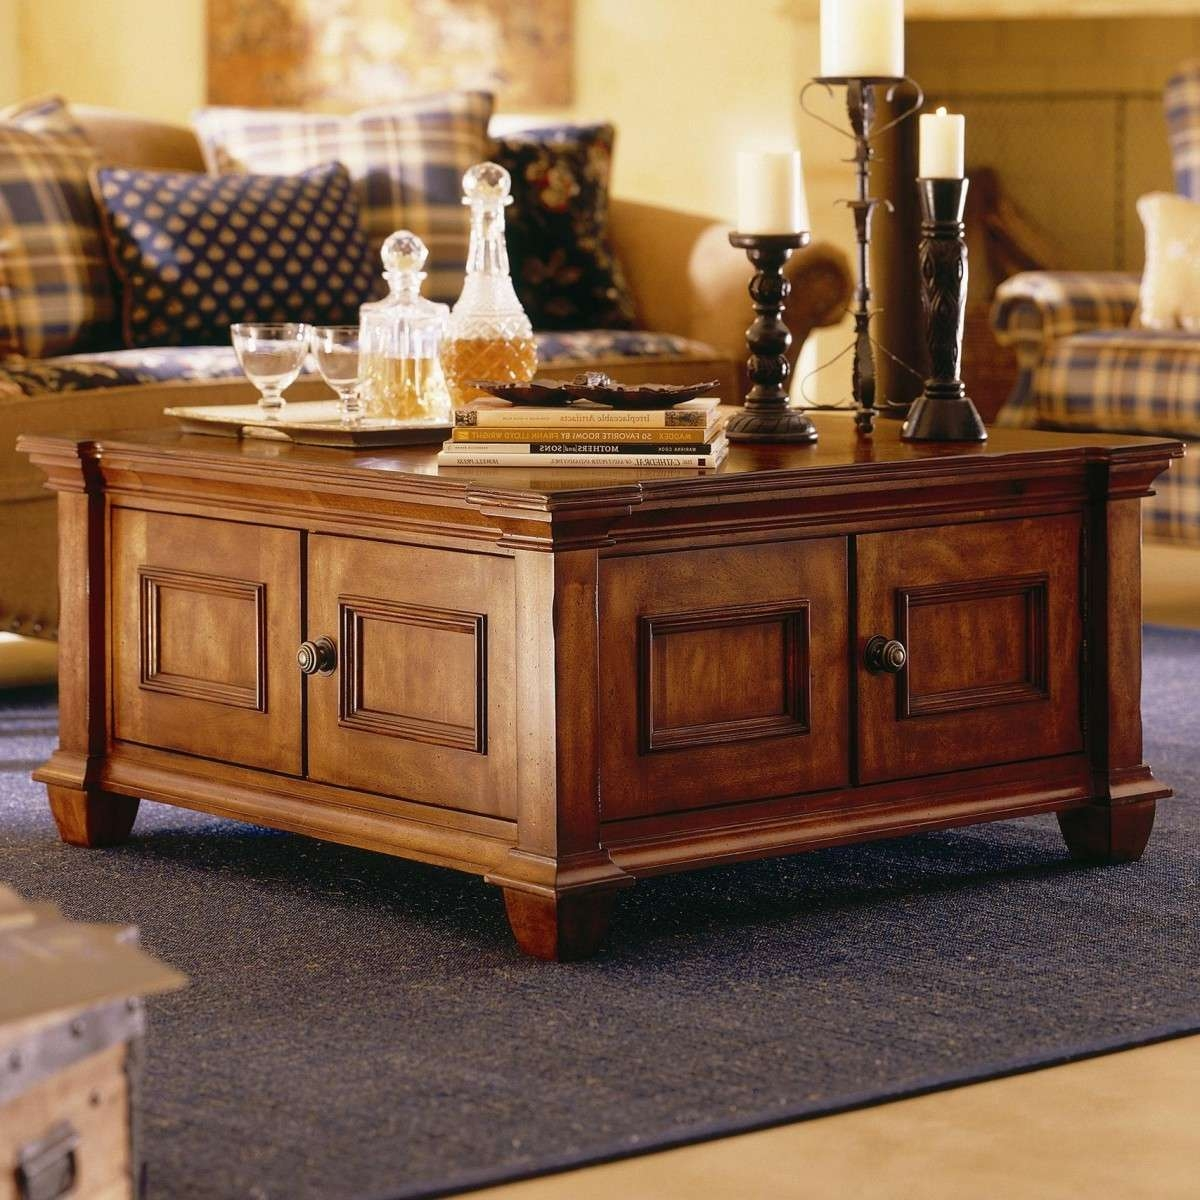 Coffee Tables : Square Coffee Table With Storage Cubes Drawers Within Famous Wooden Coffee Tables With Storage (View 7 of 20)